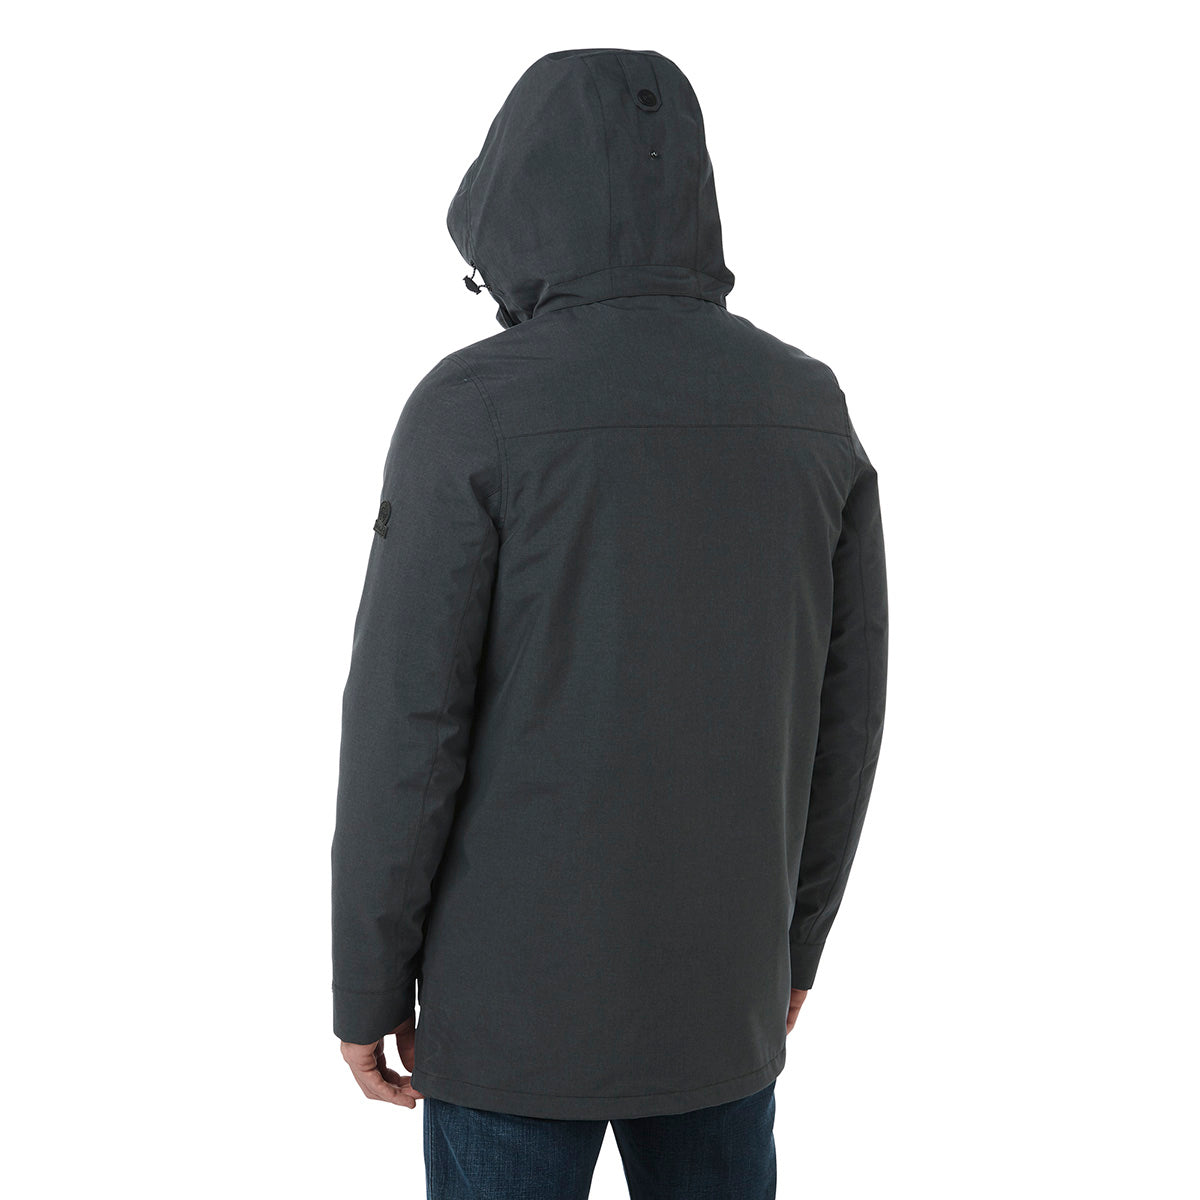 Arkle Mens Milatex 3-In-1 Jacket - Black Marl image 4